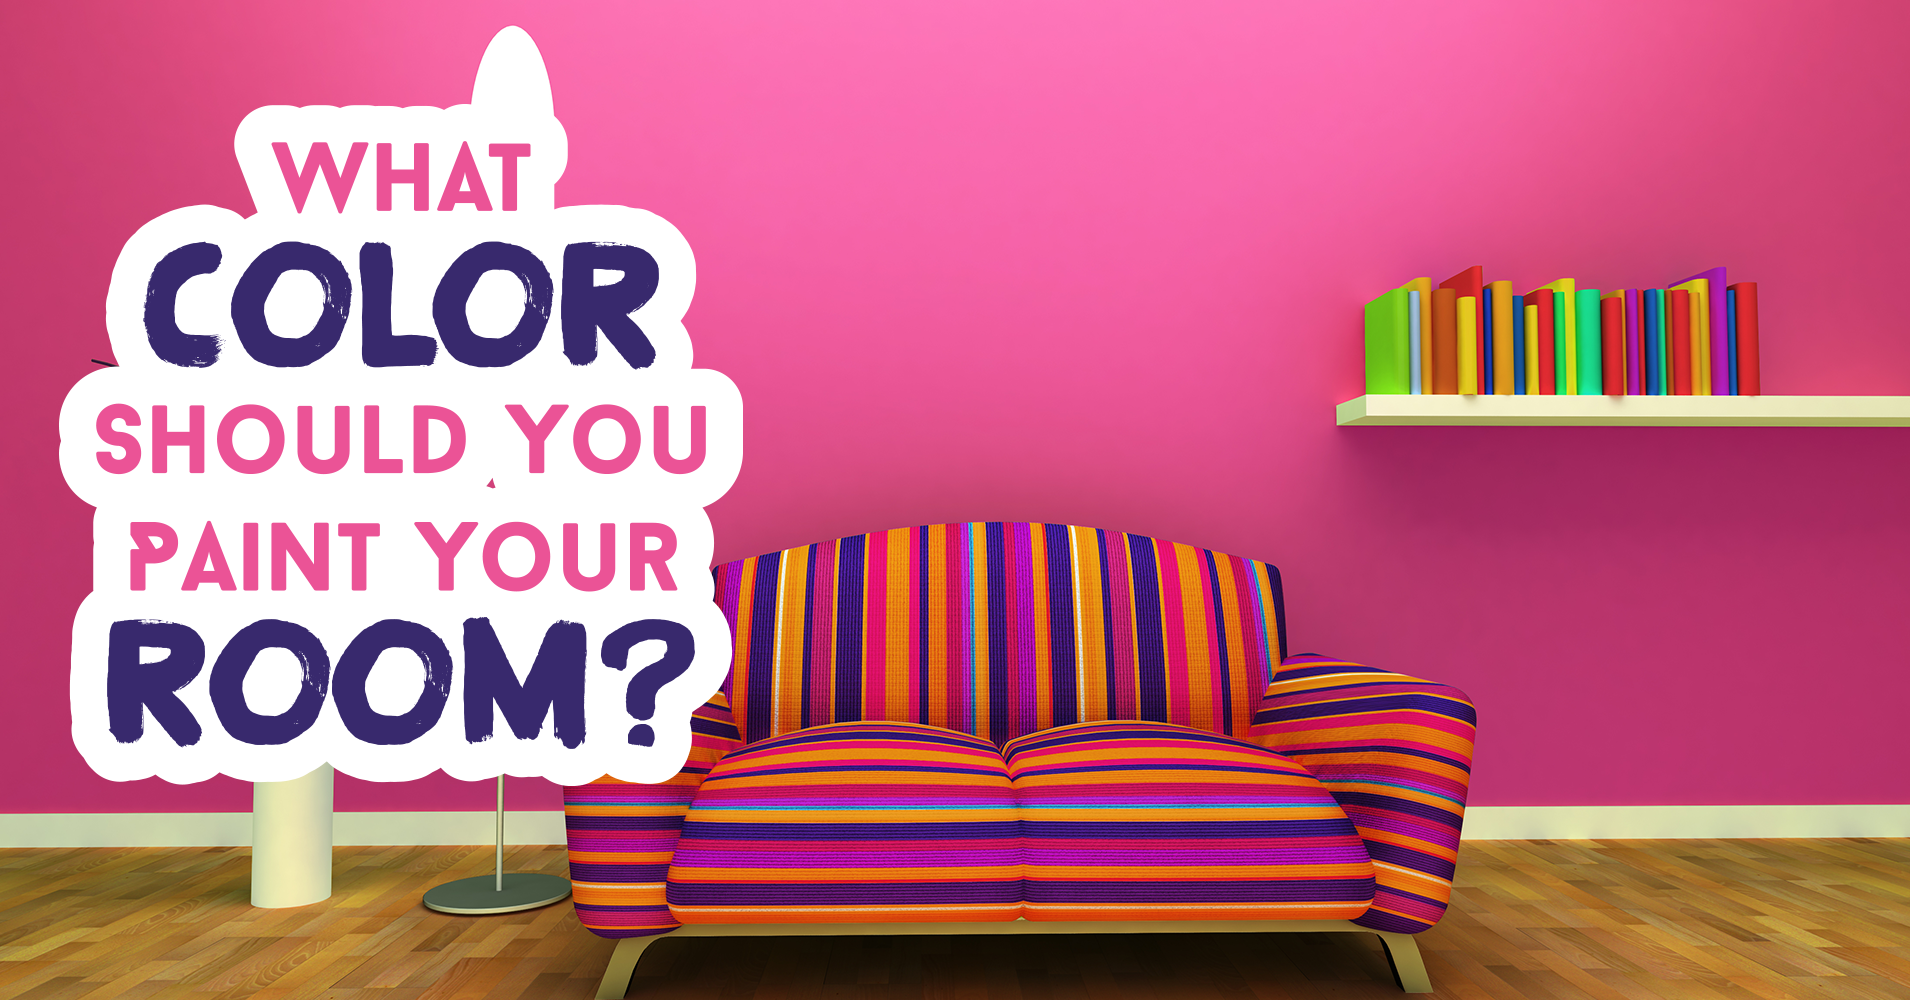 What Color Should You Paint Your Room? - Quiz - Quizony.com